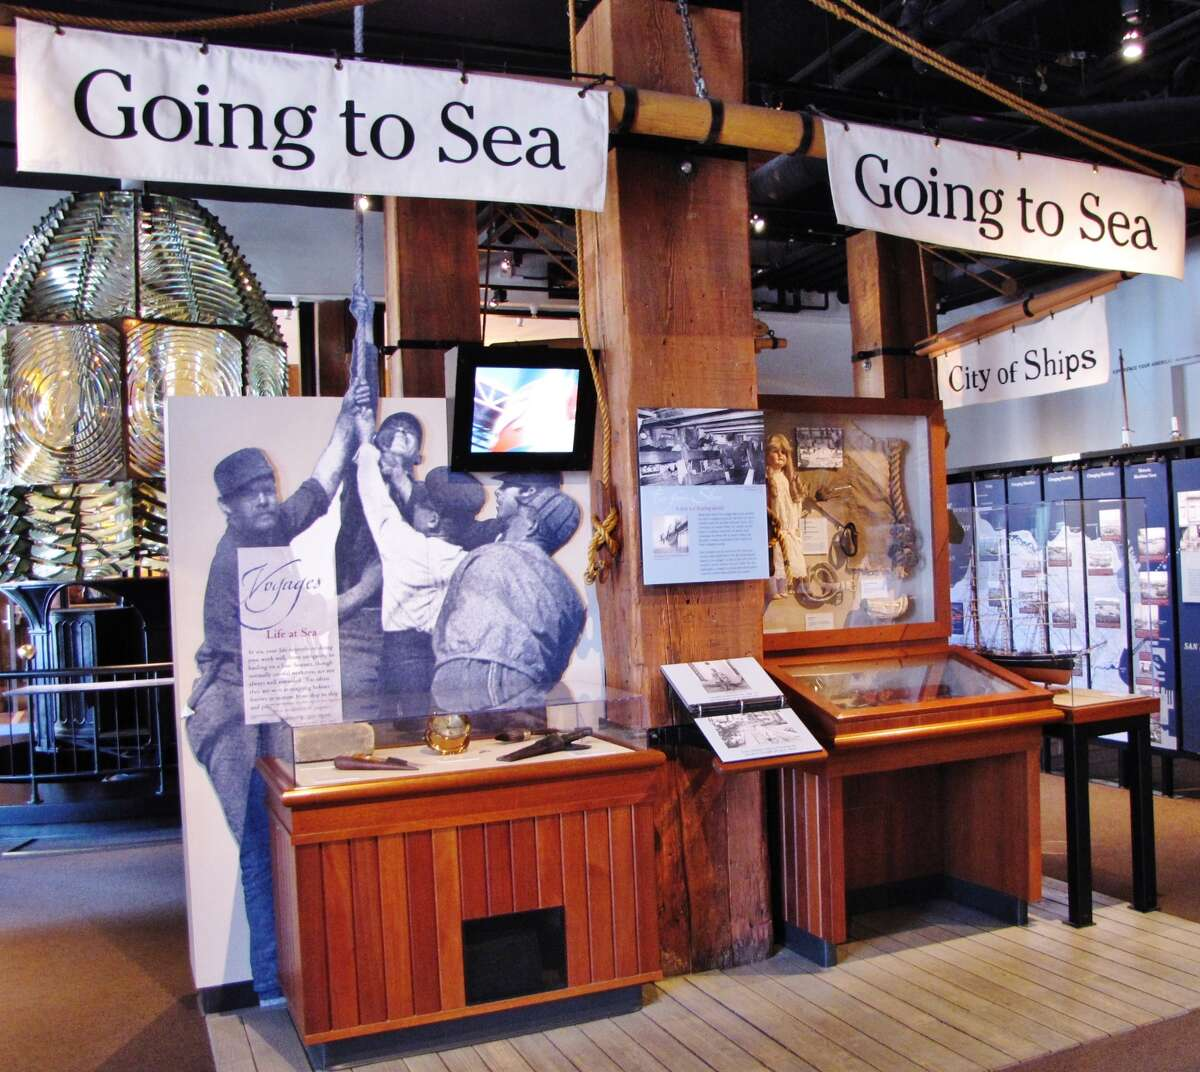 An exhibit at the San Francisco Maritime Museum represents six of the city's shoreline areas.